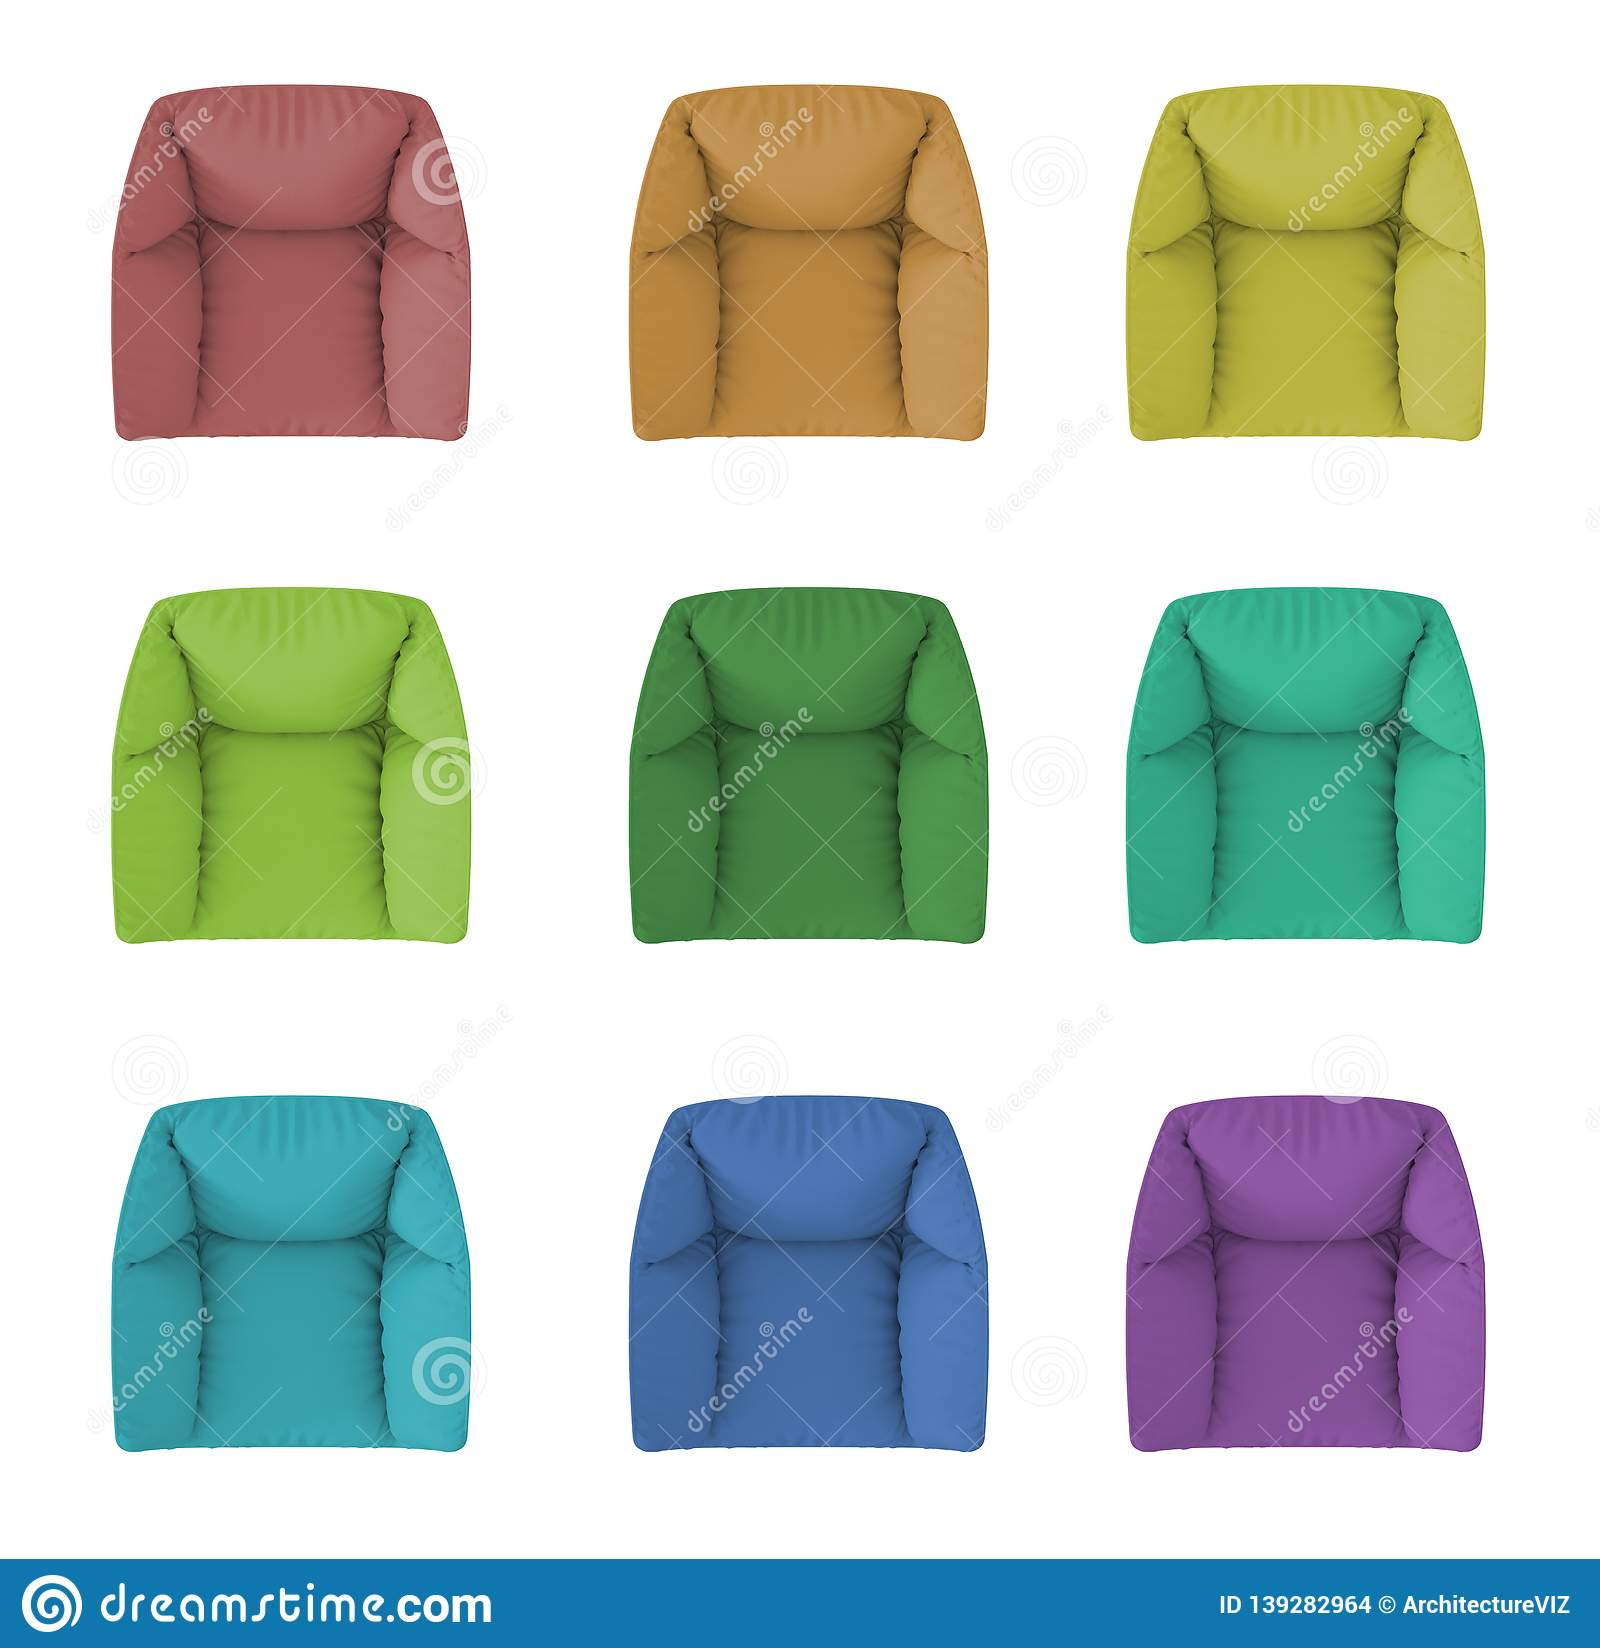 Set Of 9 Modern Monochrome And Colored Armchair Isolated On White